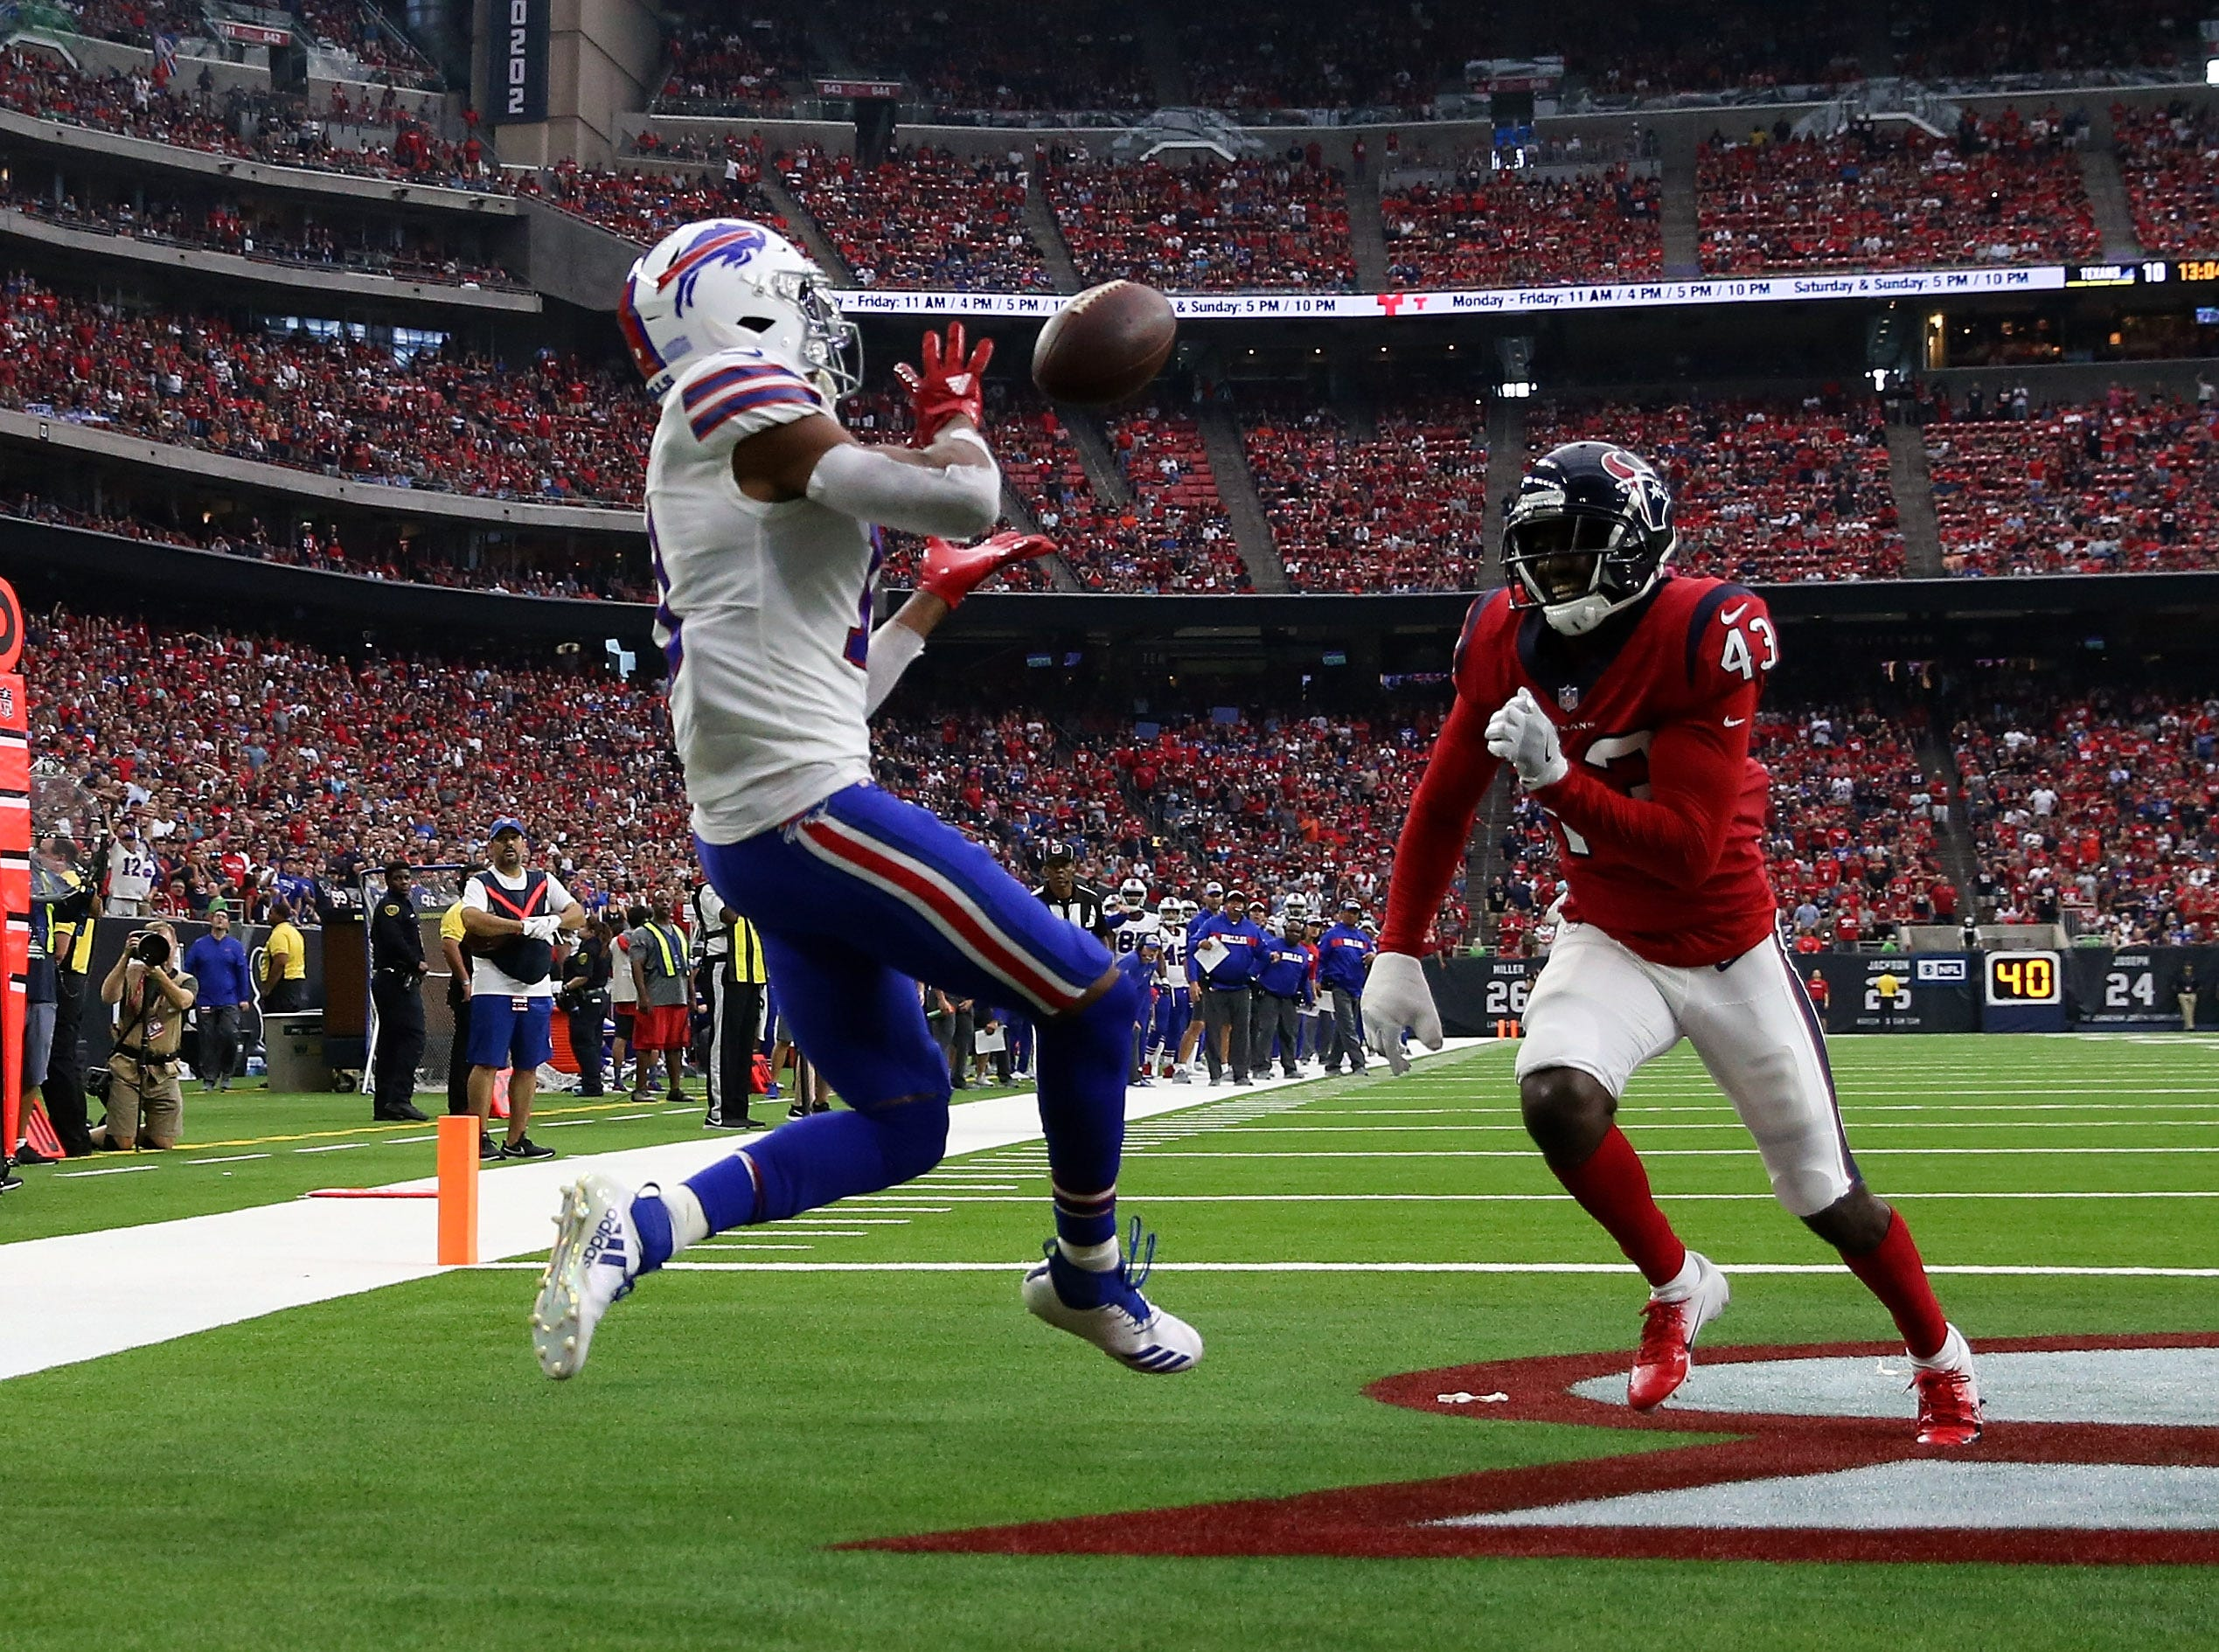 Oct 14, 2018; Houston, TX, USA; Buffalo Bills wide receiver Zay Jones (11) catches a touchdown  pass past Houston Texans defensive back Shareece Wright (43) during the second half at NRG Stadium. Mandatory Credit: Kevin Jairaj-USA TODAY Sports